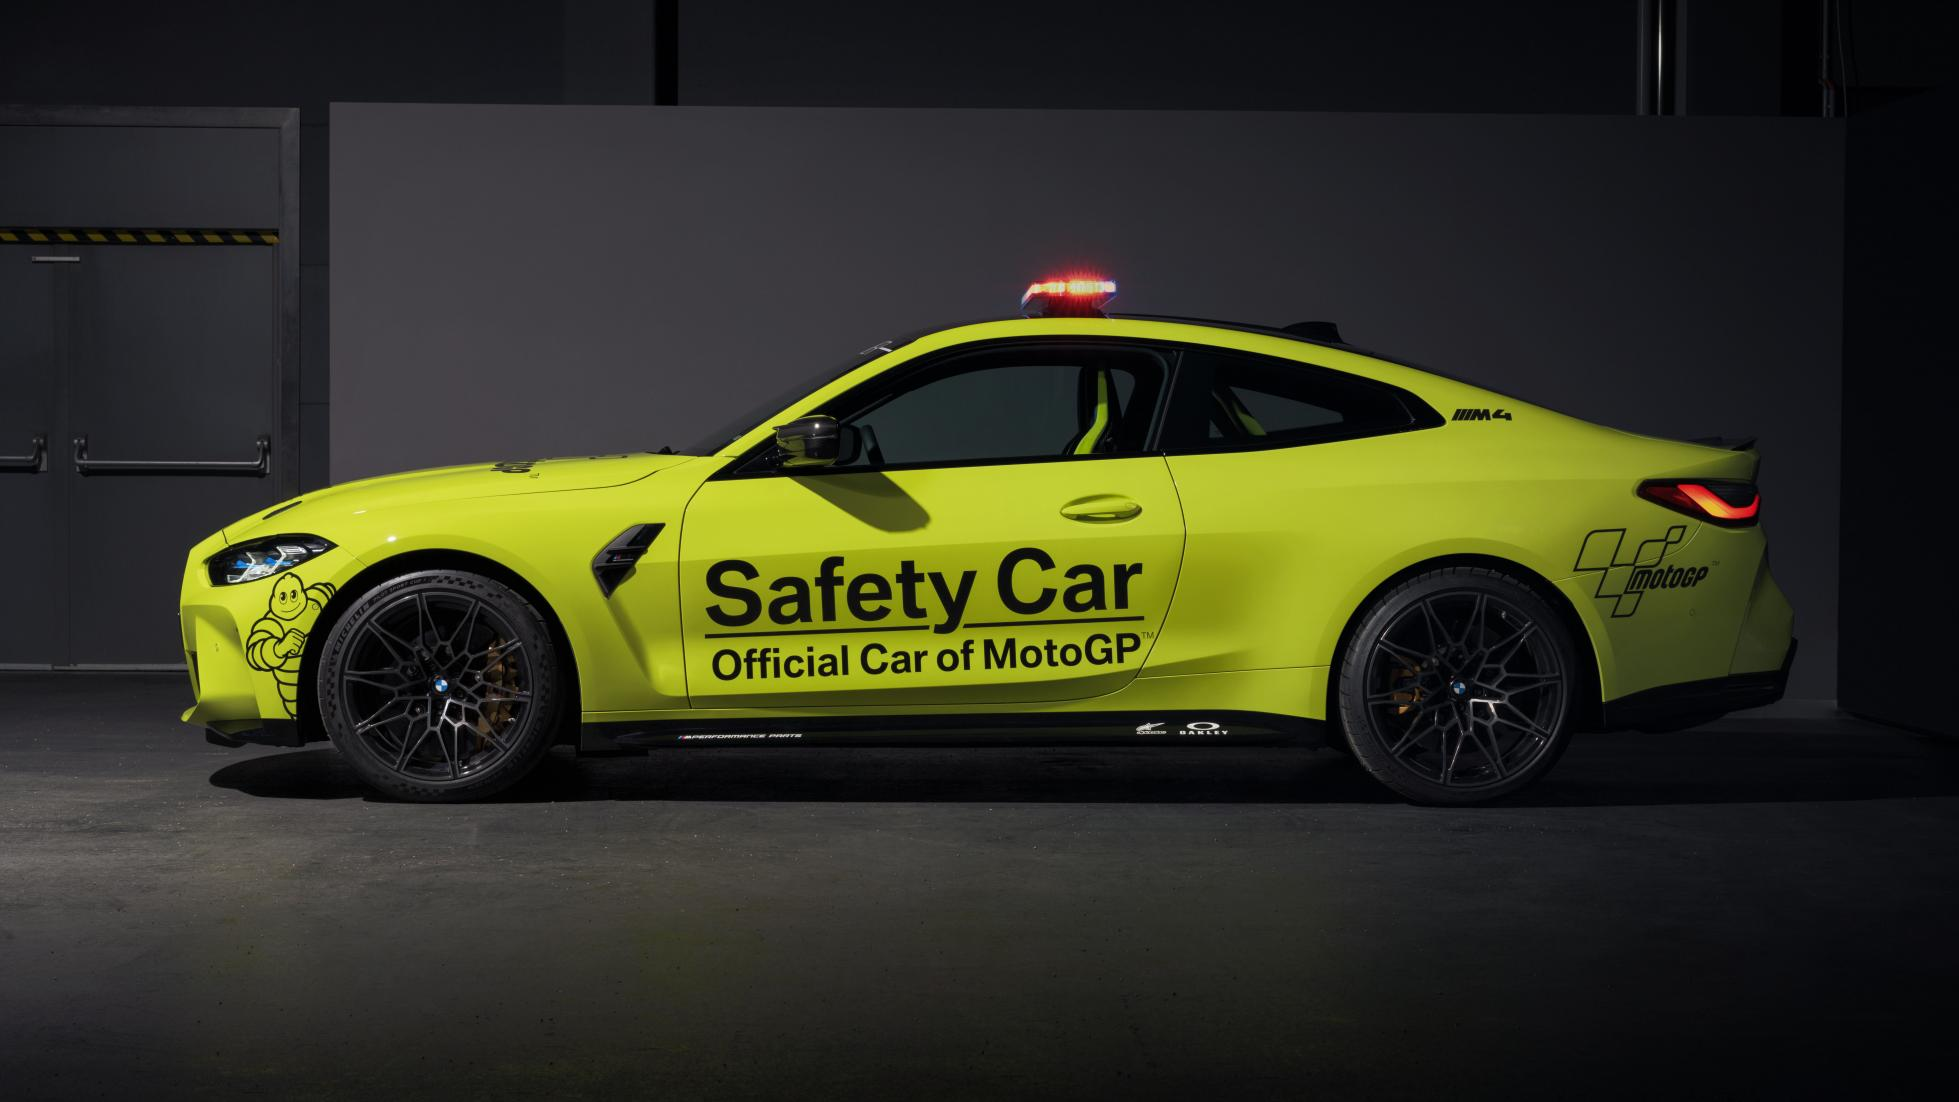 The BMW M4 as a MotoGP safety car, profile